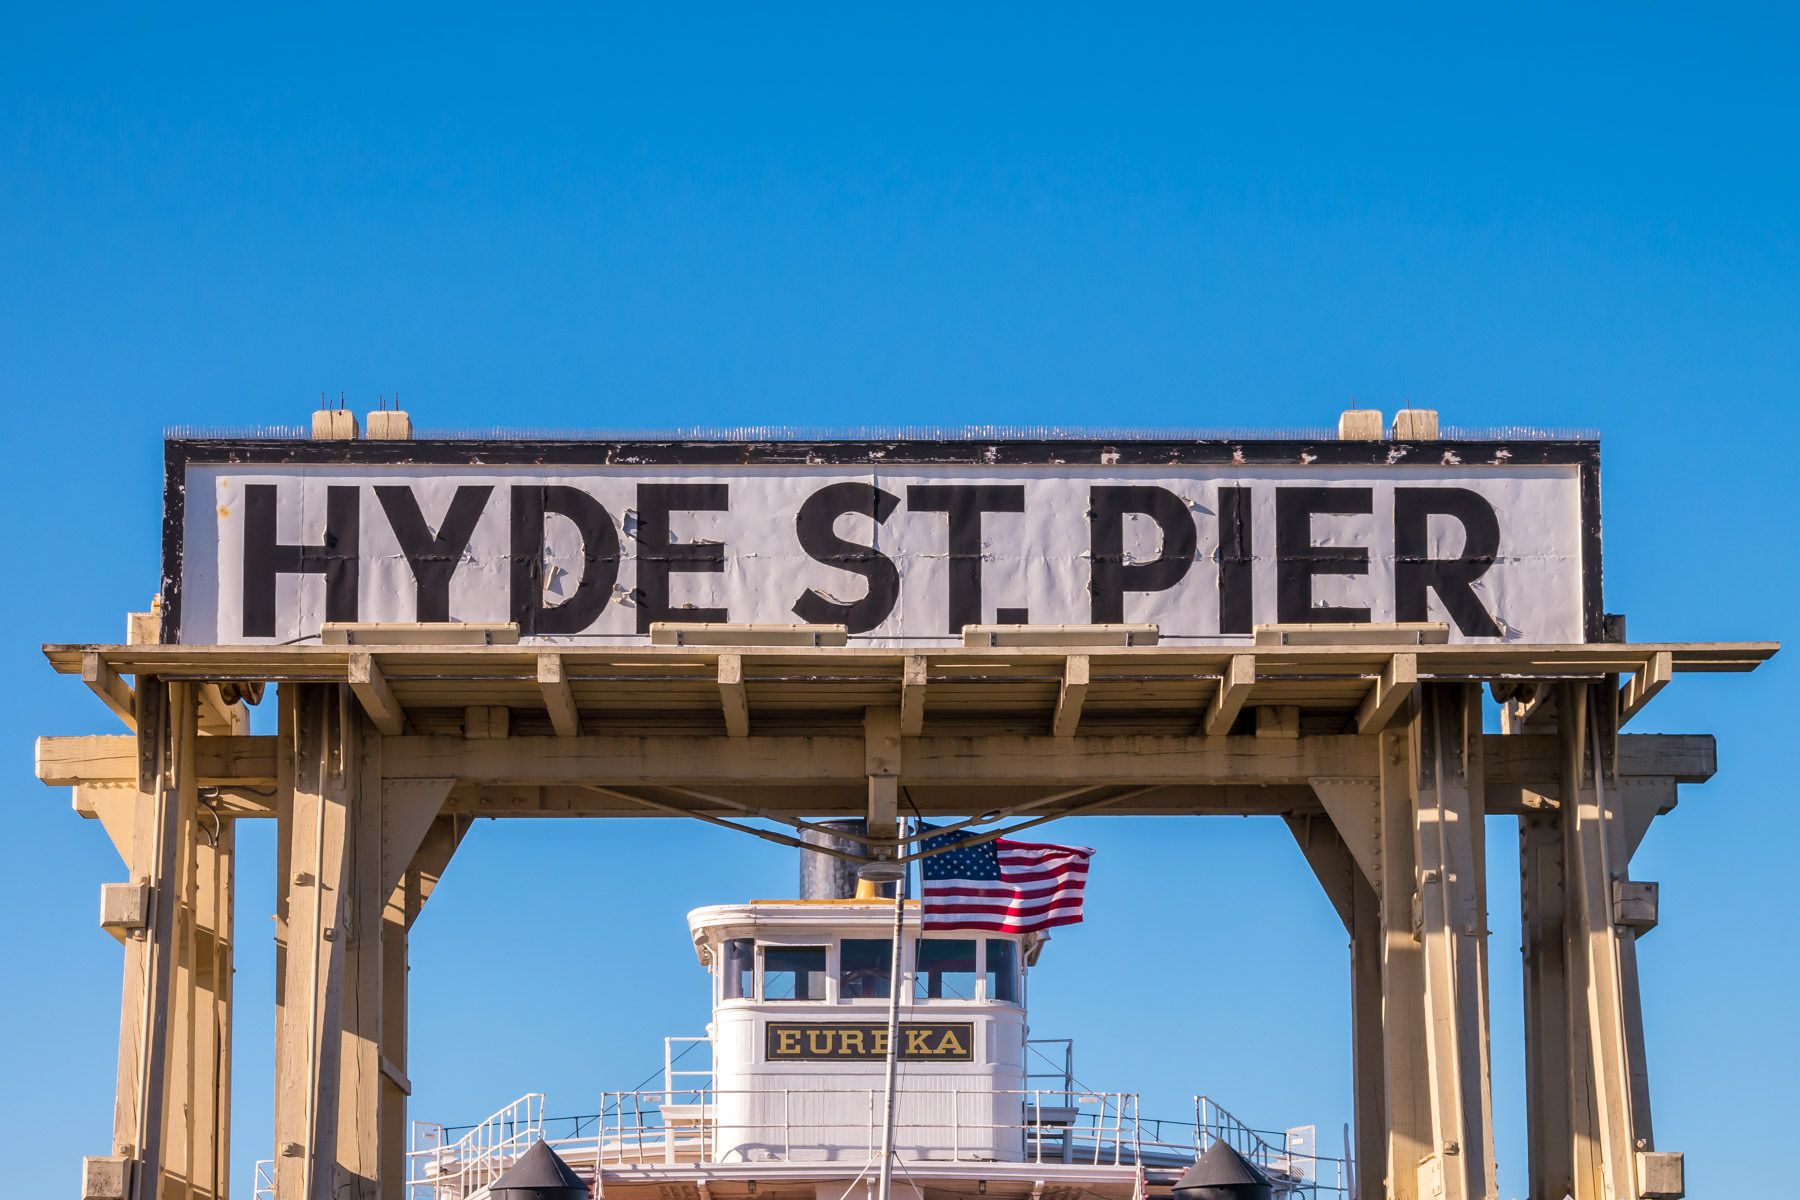 The bridge of the 1890 steam ferry Eureka peeks into the frame under the sign for the Hyde Street Pier at San Francisco's National Maritime Historical Park.